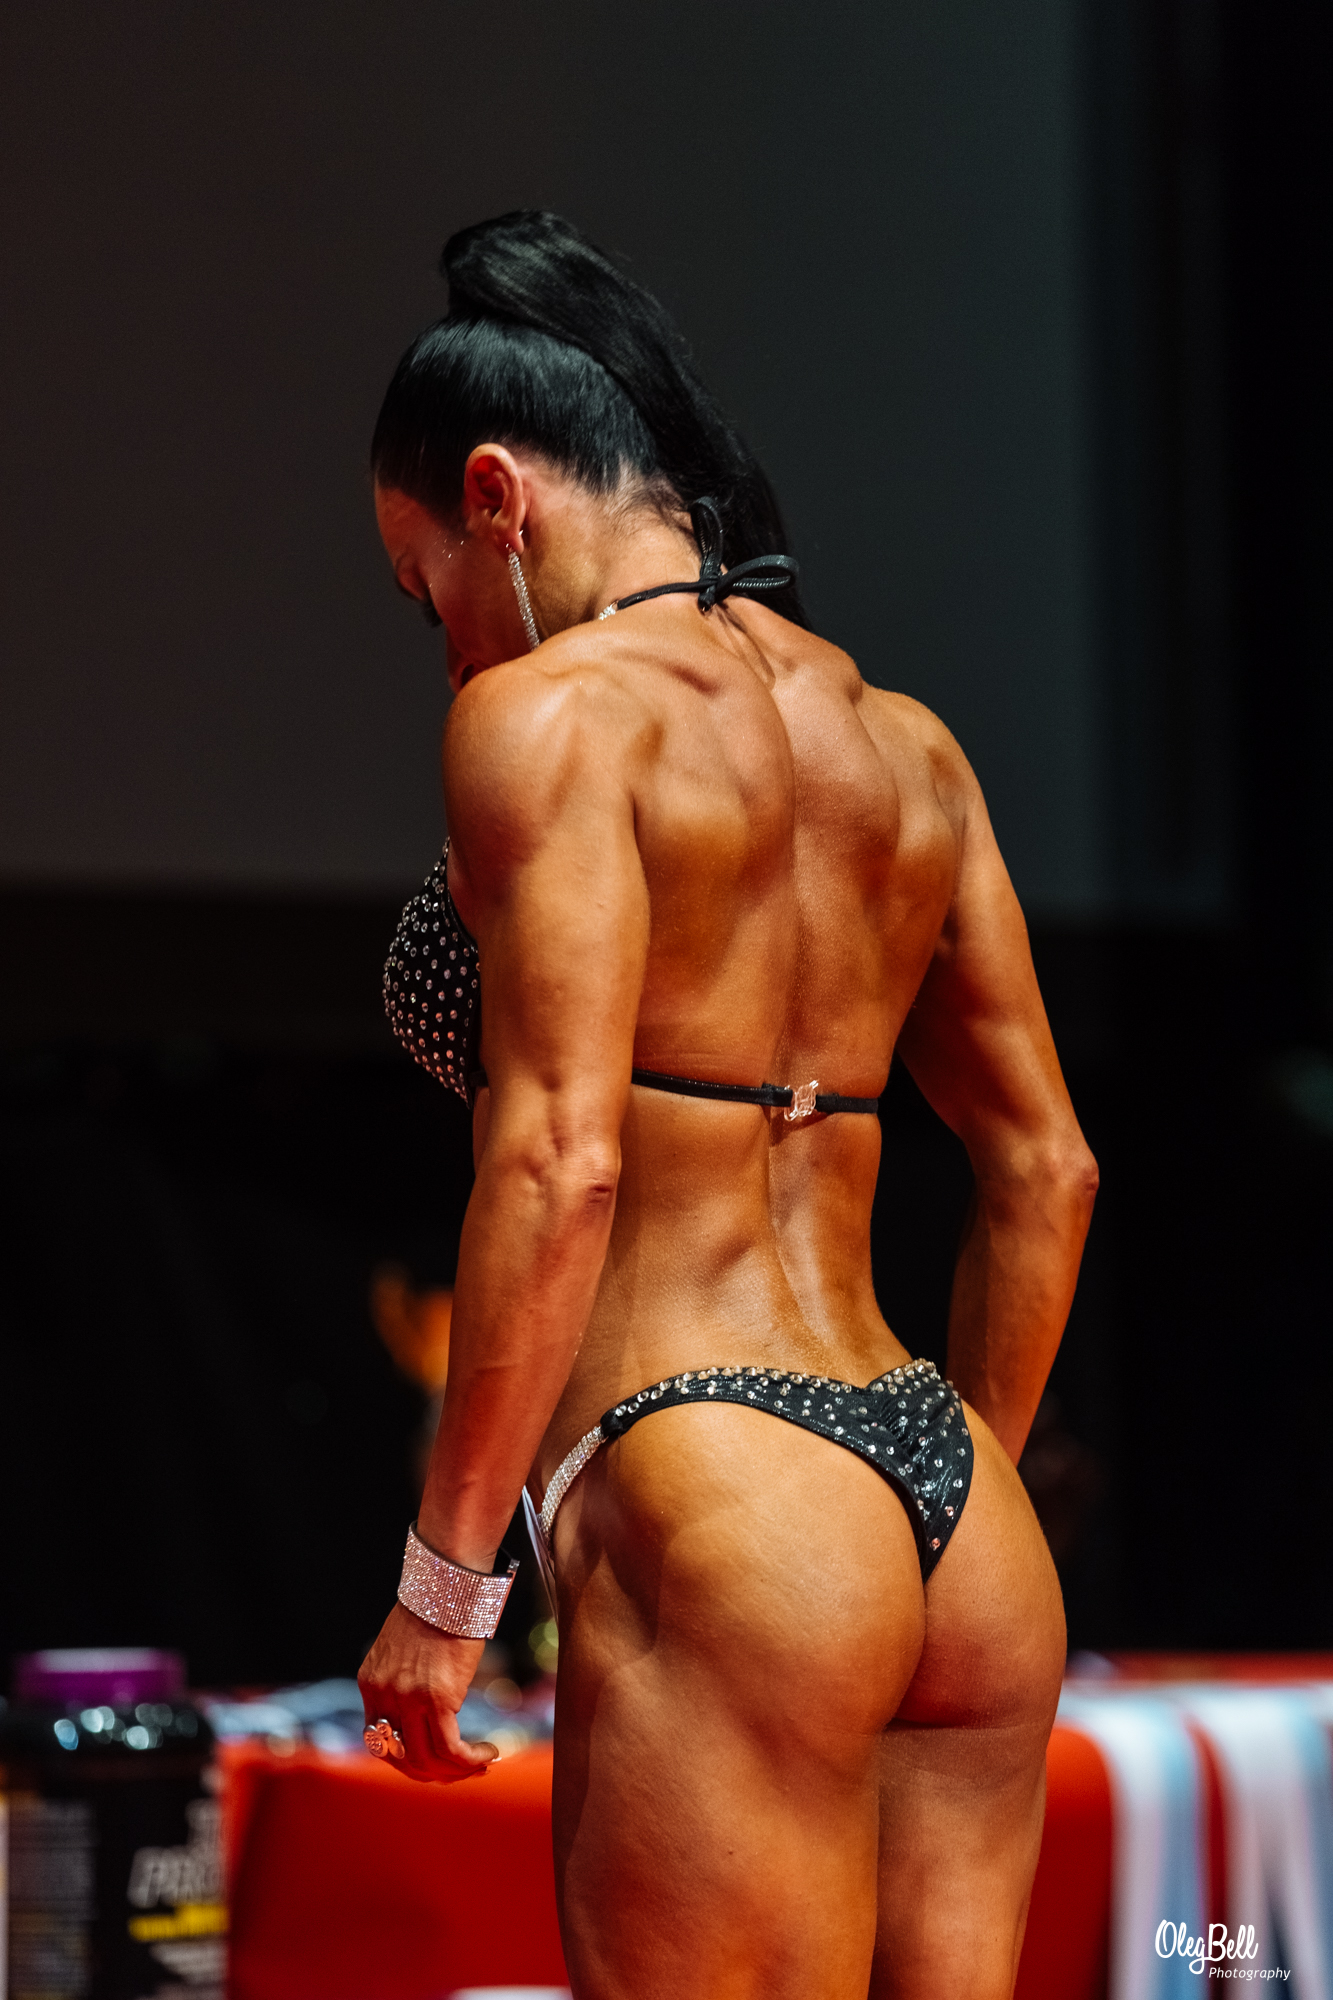 NICOLE_BODYBUILDING_COMPETITIONS_0551.jpg